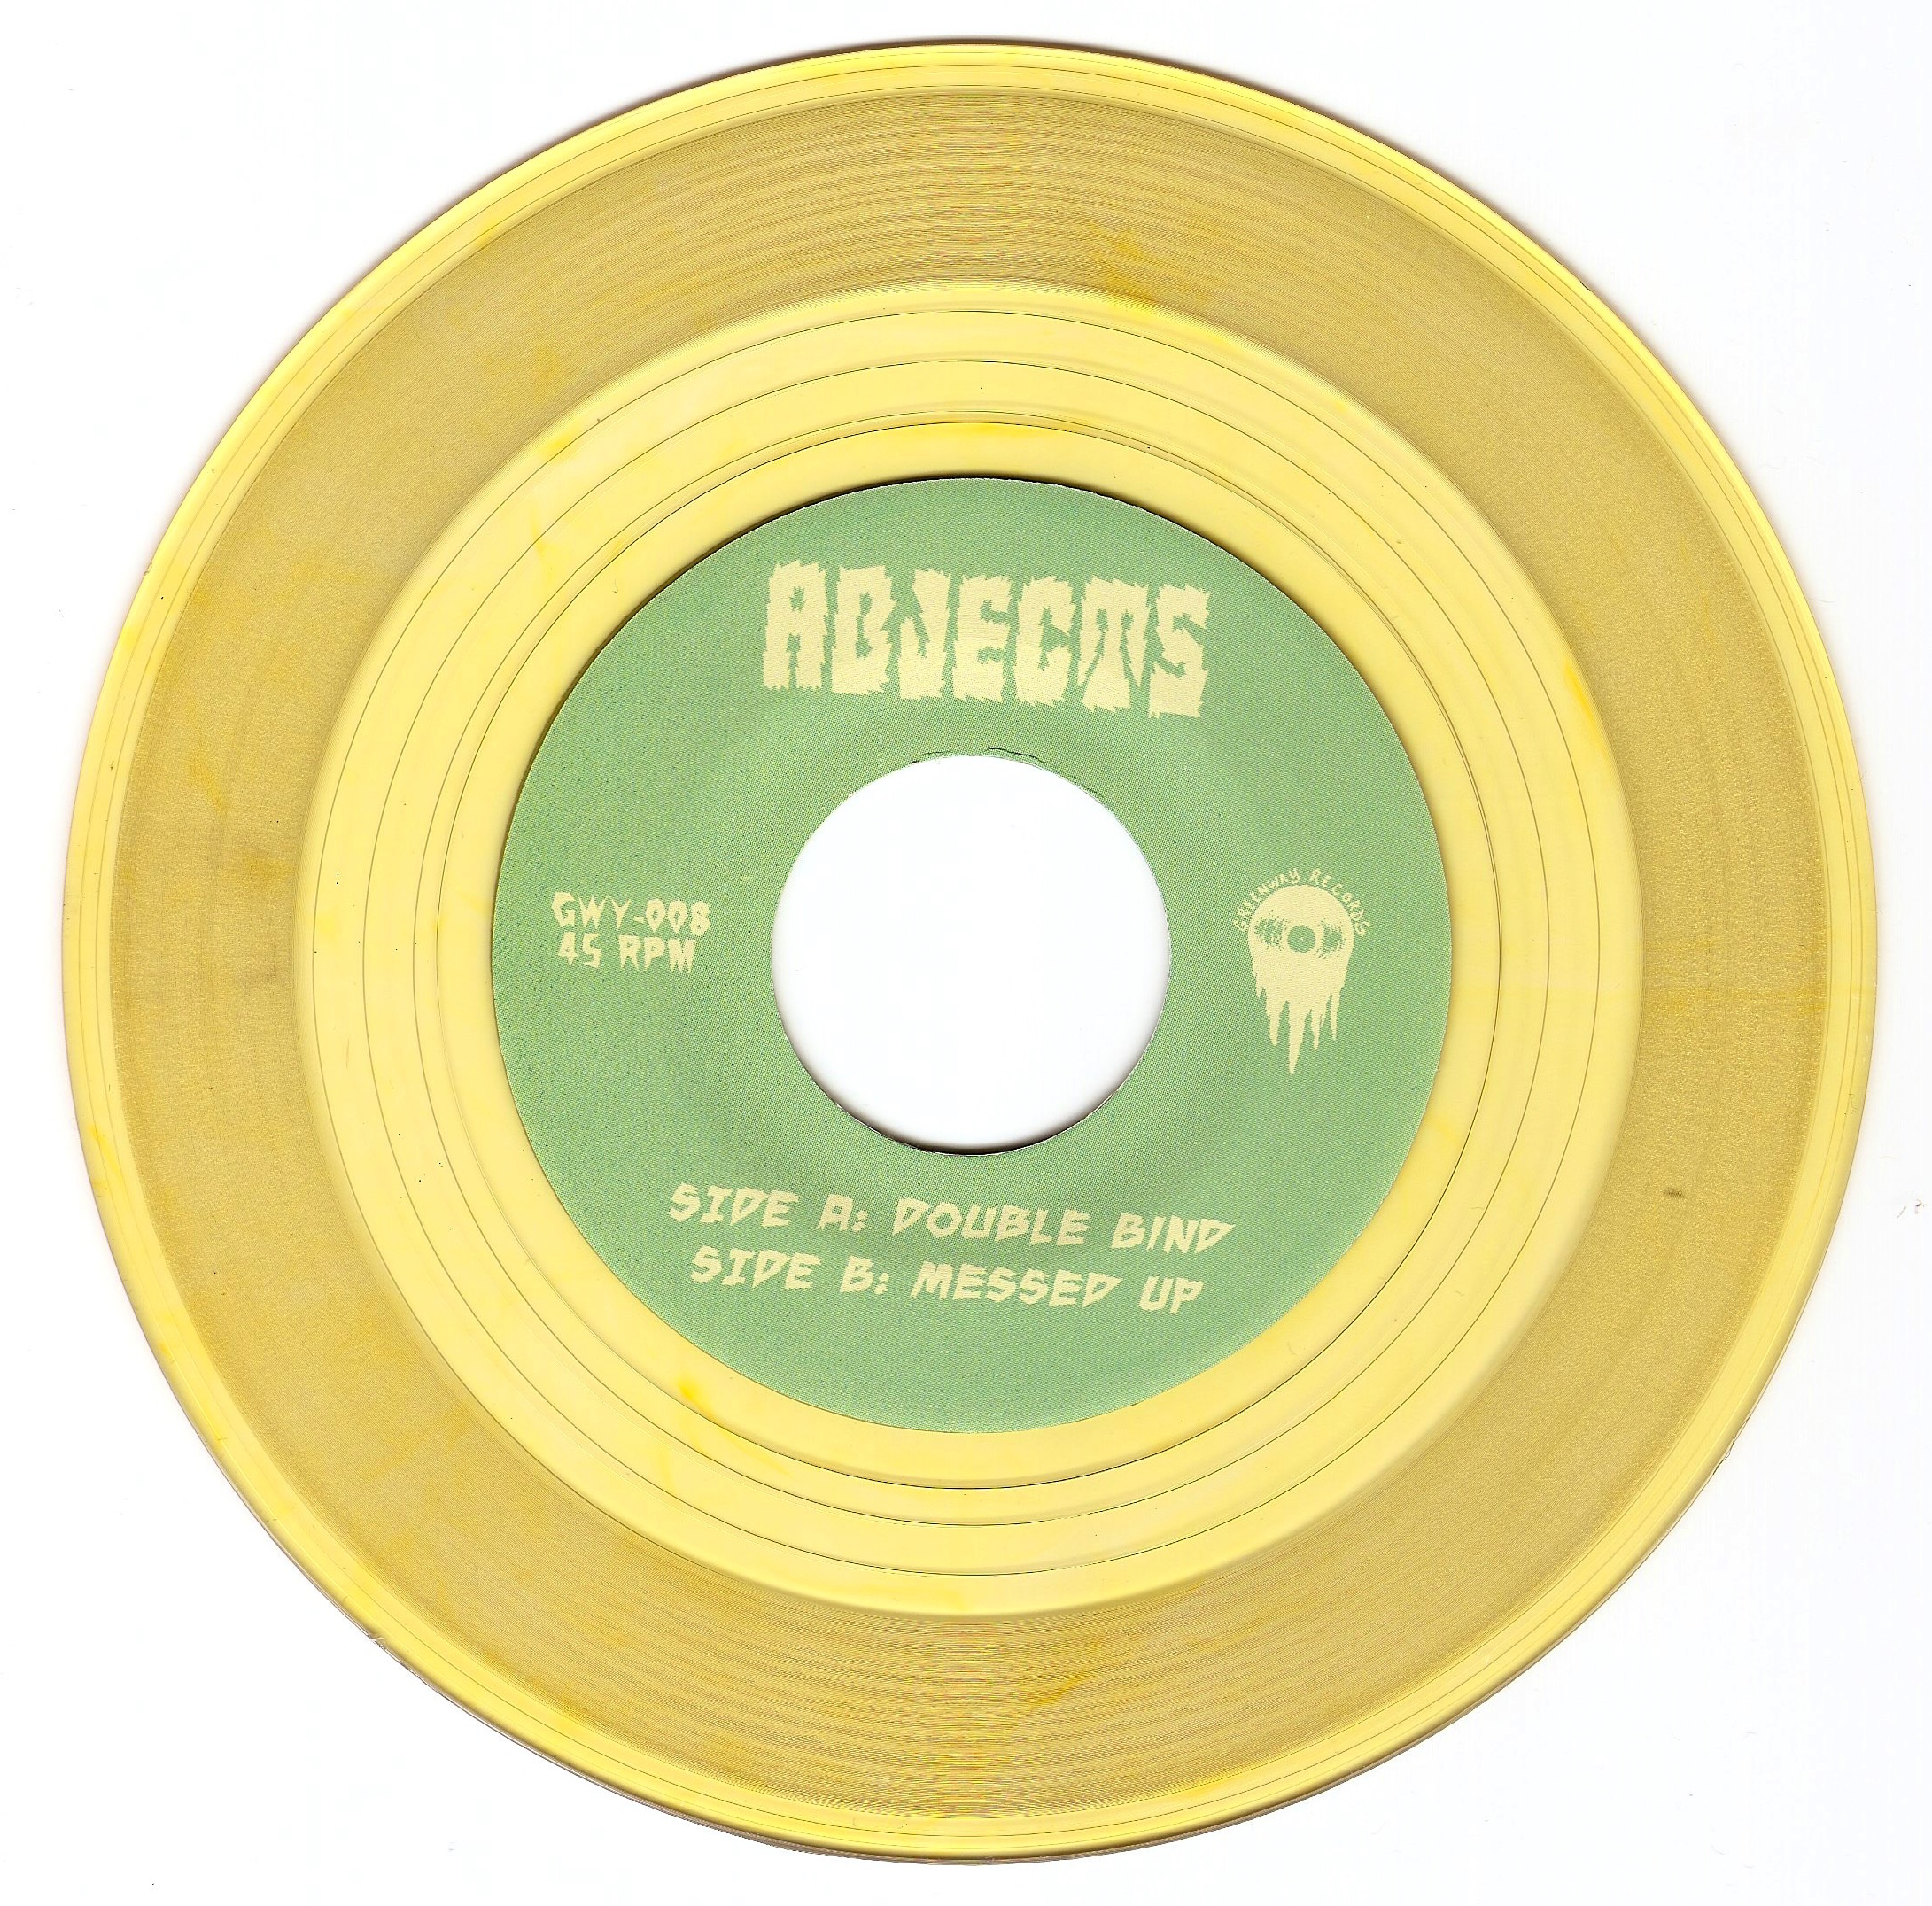 GWY-008 Abjects (Clear Yellow Vinyl) from Greenway Records